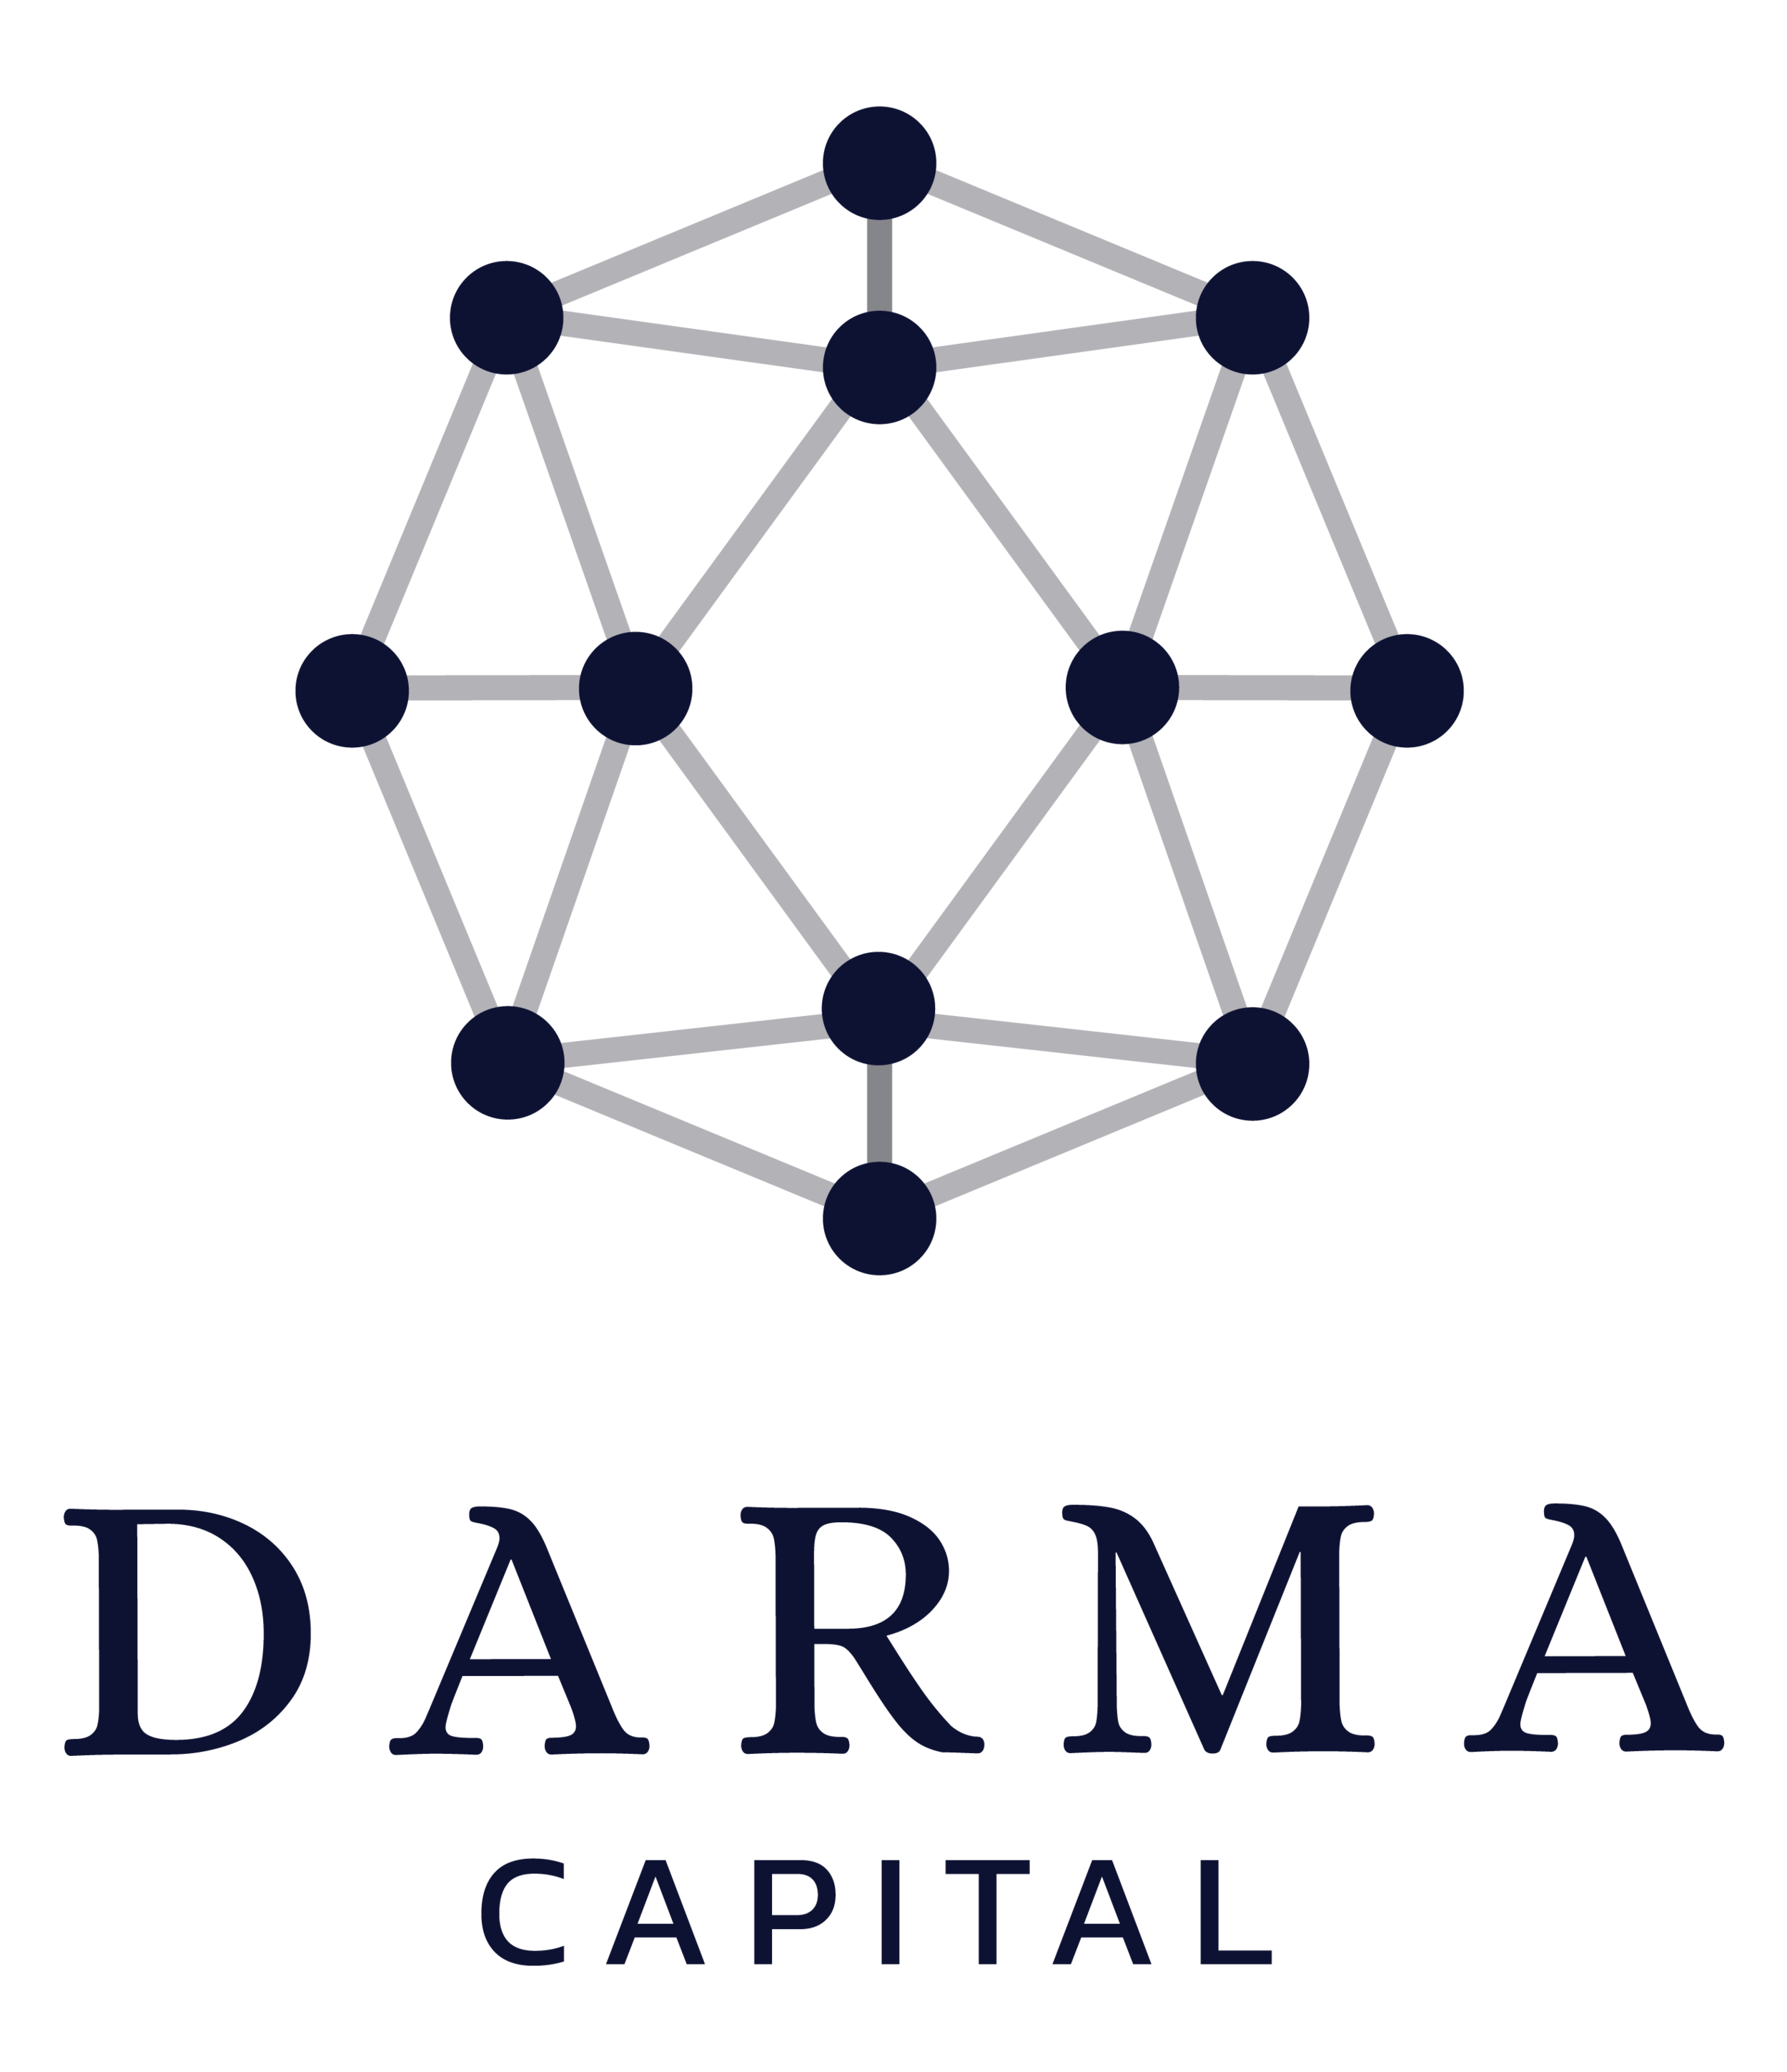 Darma-logotype-for-white (1).png